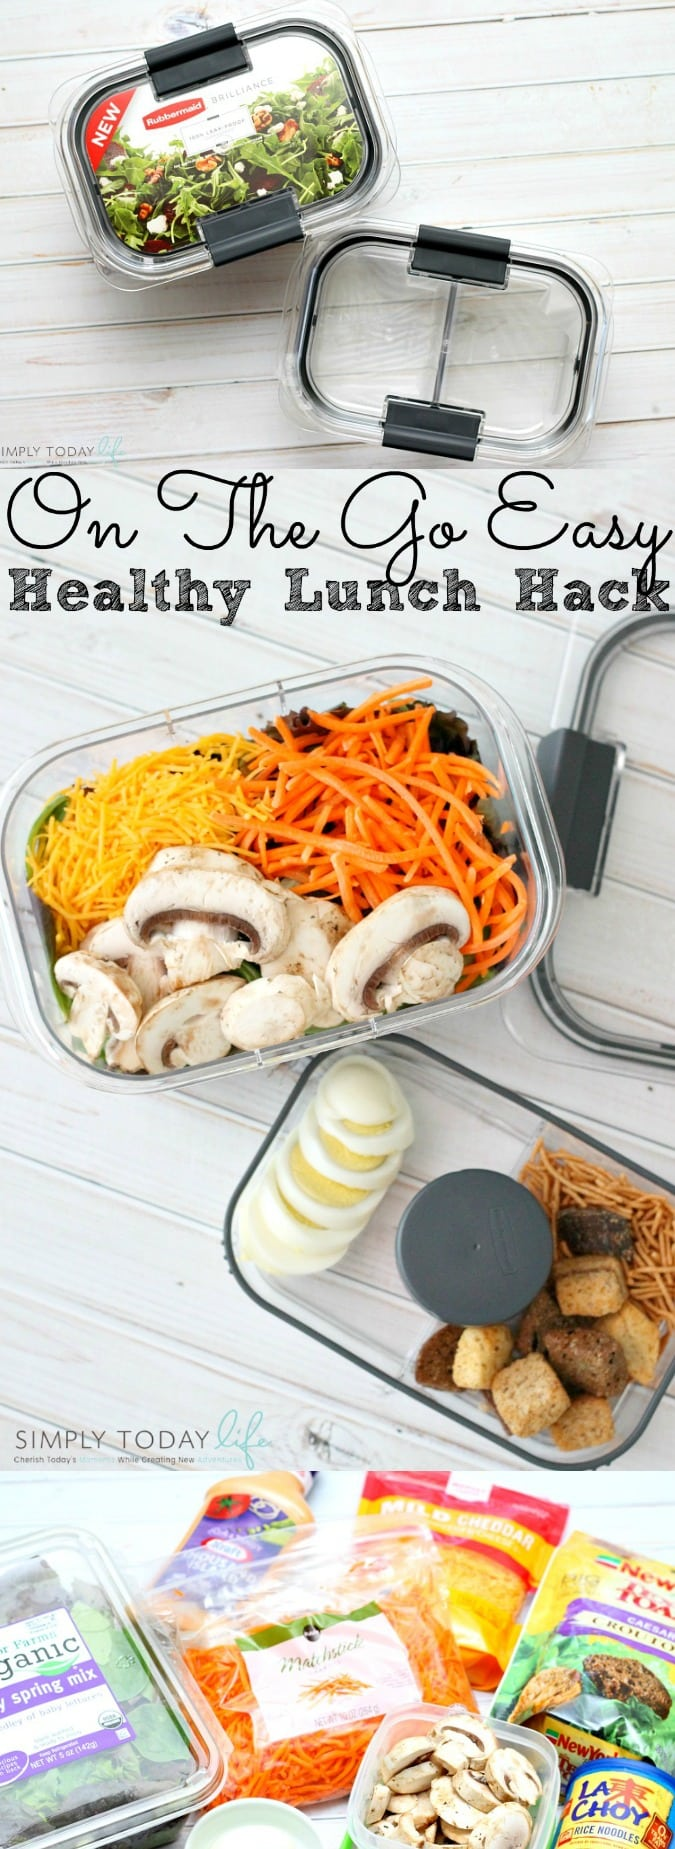 On The Go Easy Healthy Lunch Hack Rubbermaid BRILLIANCE Salad & Snack Set - simplytodaylife.com